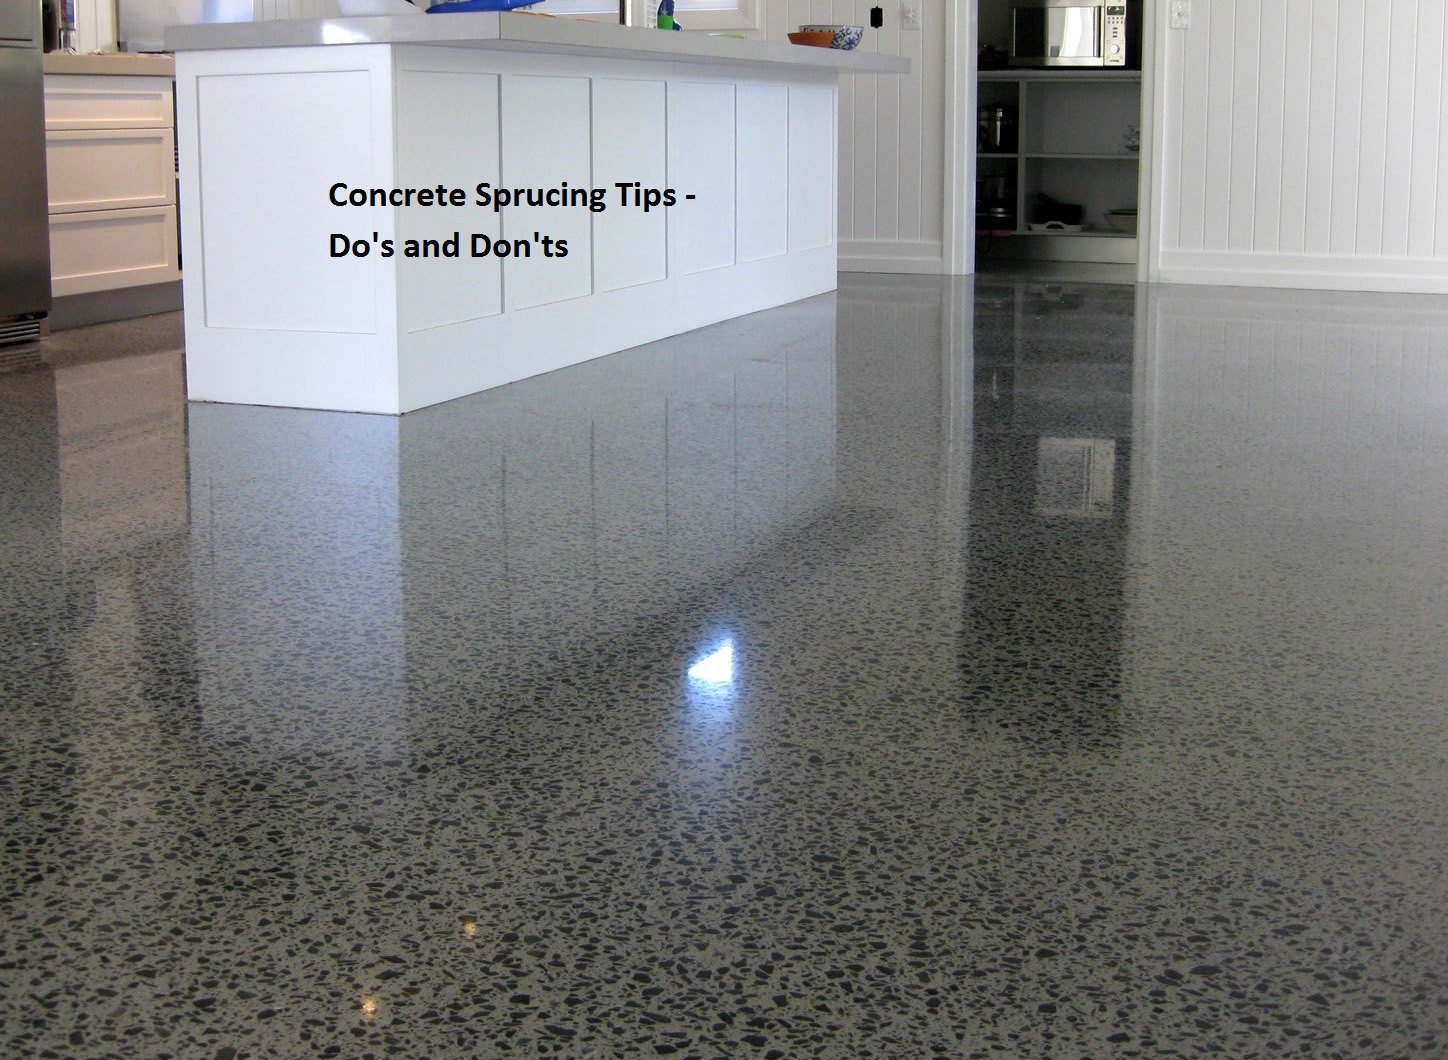 Concrete sprucing tips do 39 s and don 39 ts floor sanding for Concrete advice